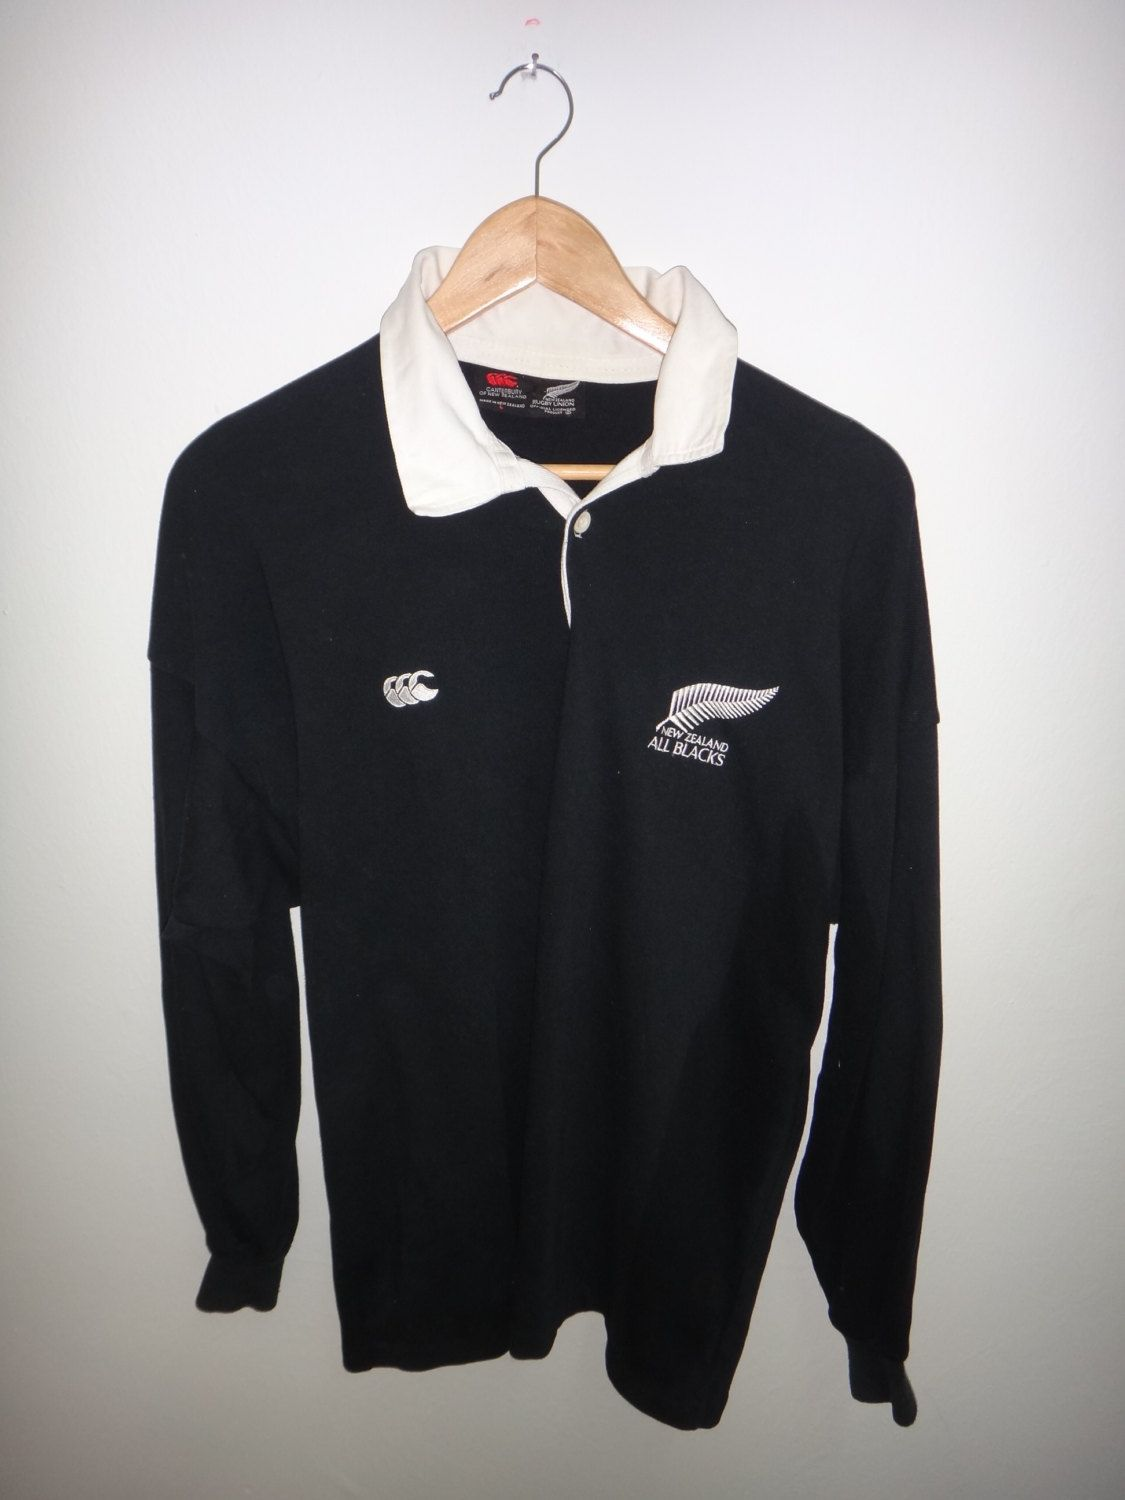 132cd87e6d8 25 Vintage Canterbury Of New Zealand Rugby Union All Black Original Shirt -  $56.25 USD